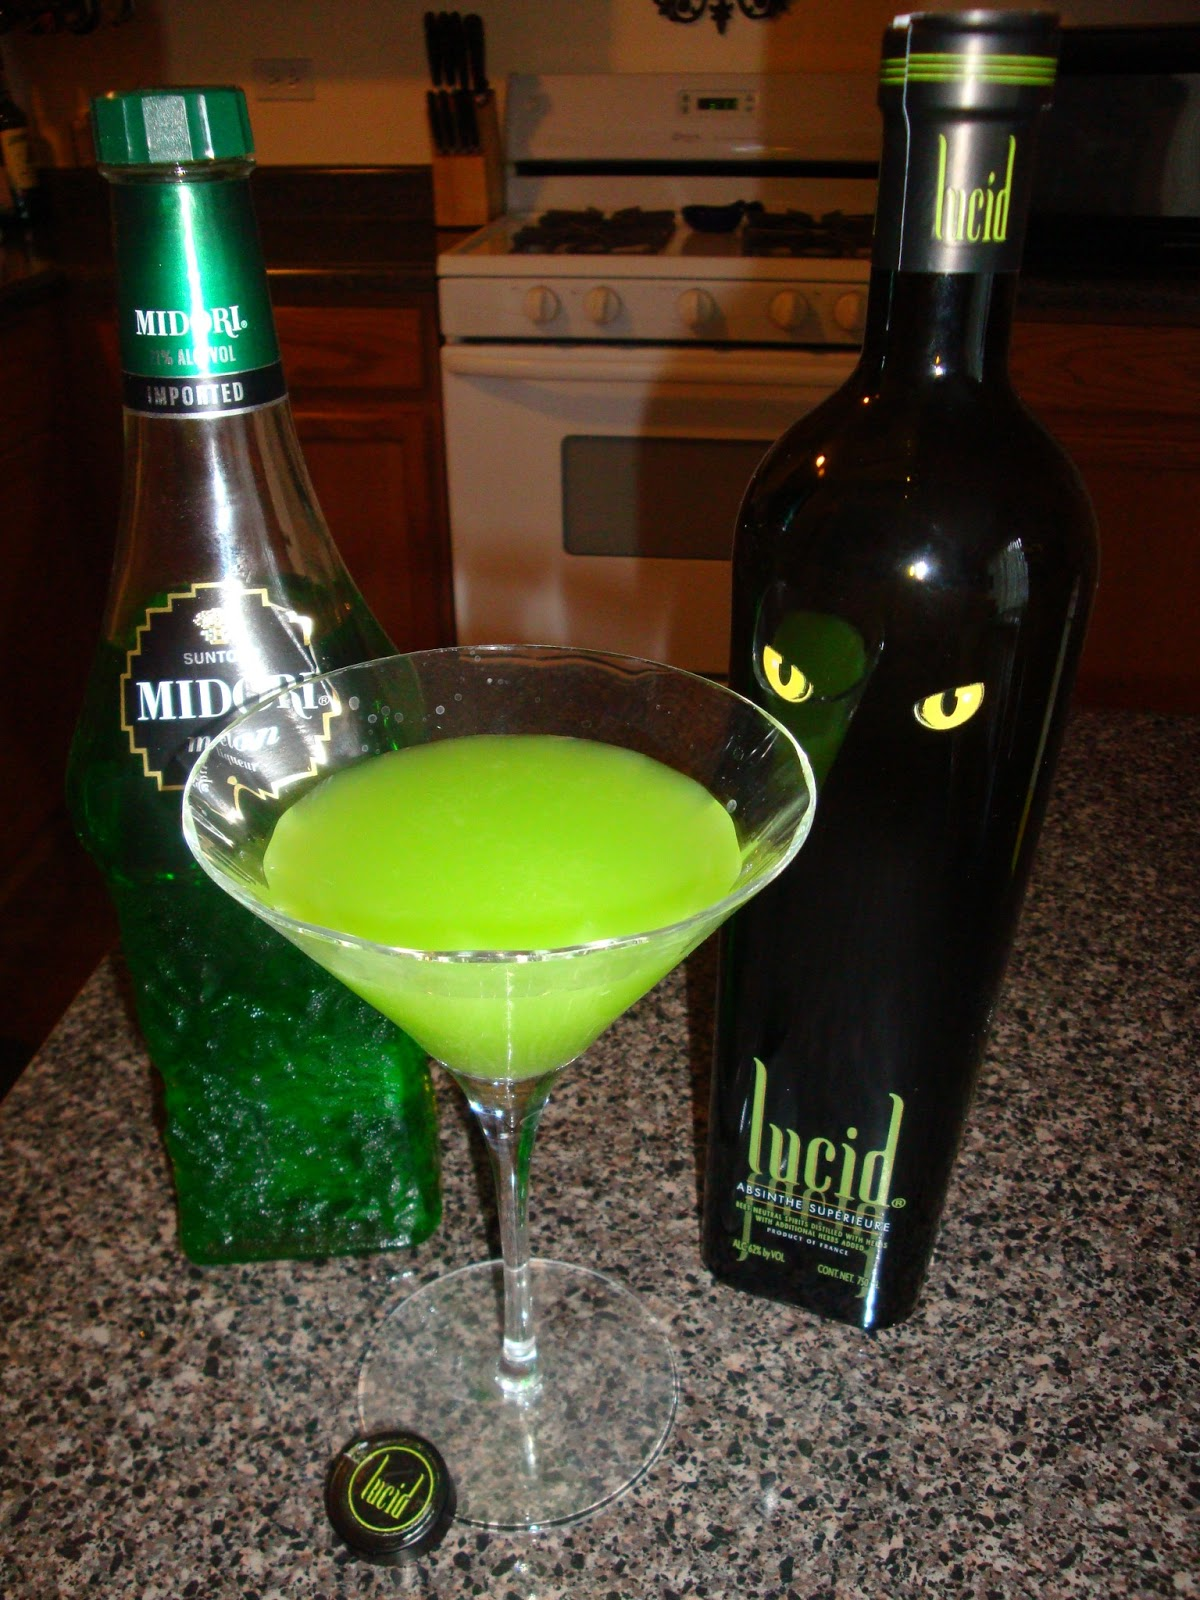 absinthe history | Get to know Lucid Absinthe